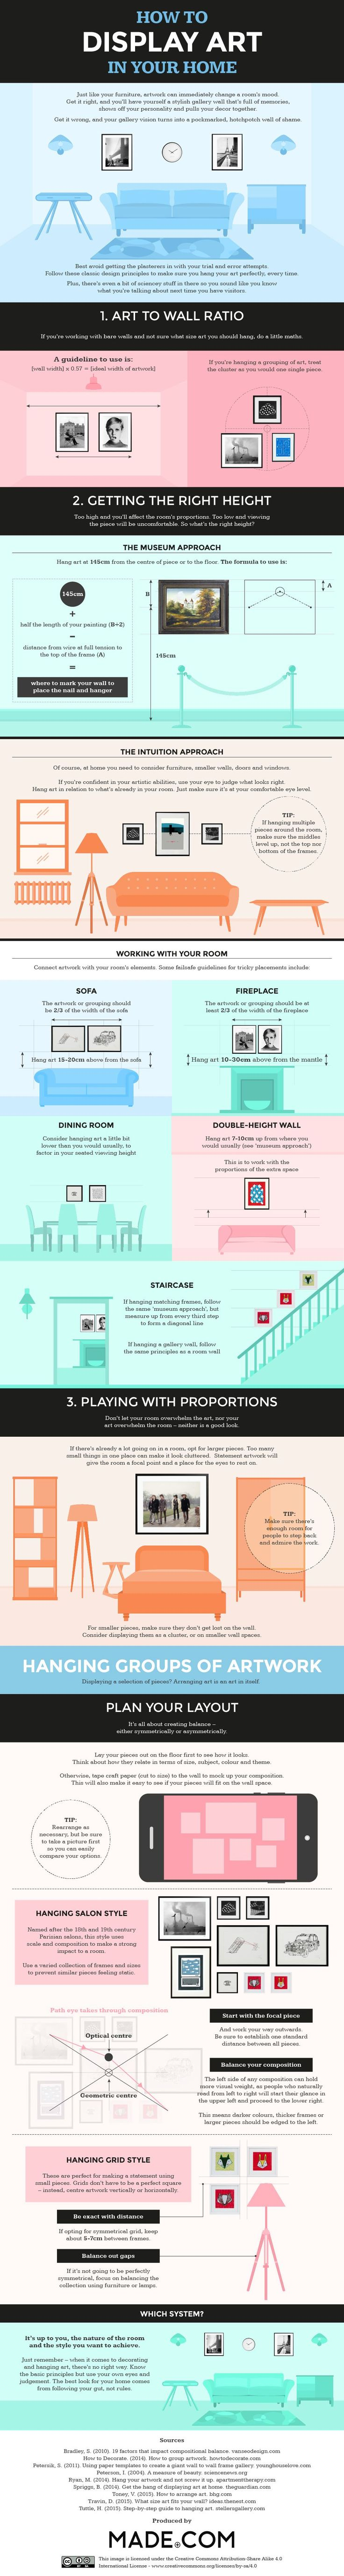 Guide to hanging artwork in your home. TL;DR: Don't hang your artwork too high above your eye line.